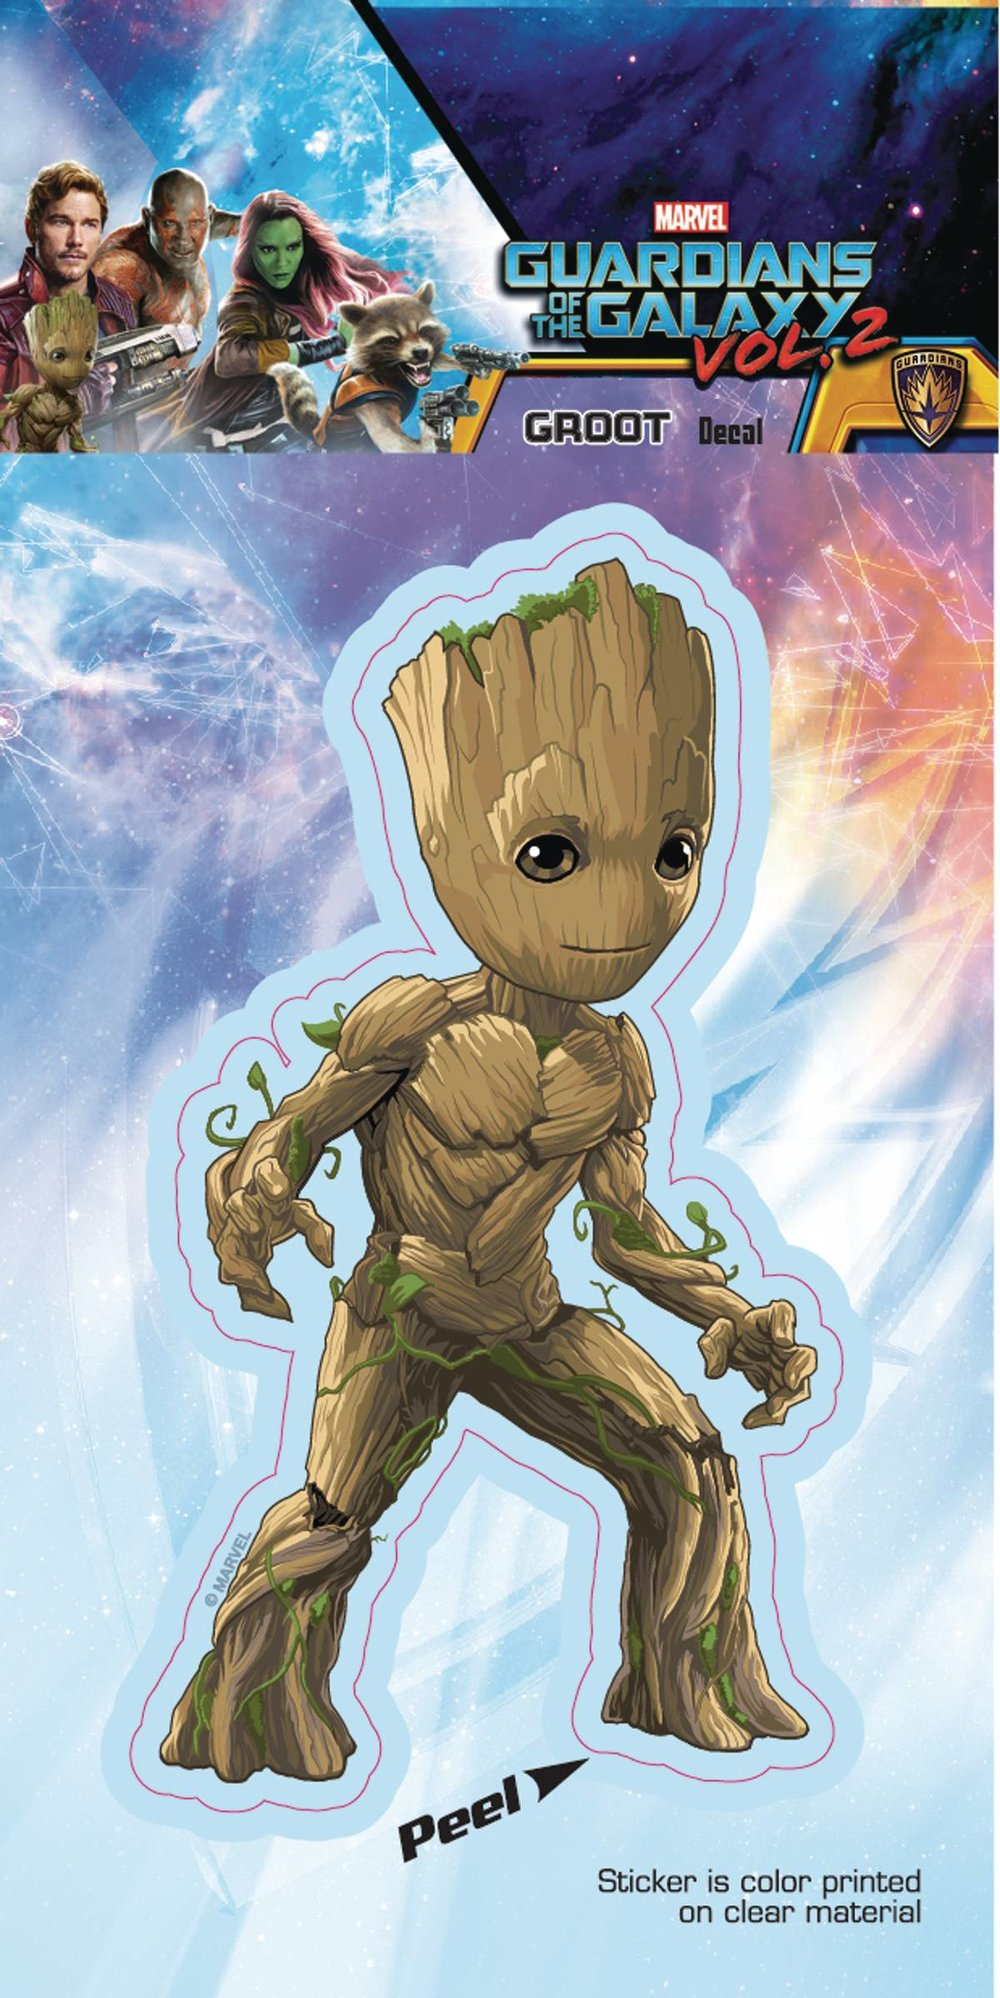 GUARDIANS OF THE GALAXY VOL.2 GROOT WALKING DECAL.jpg